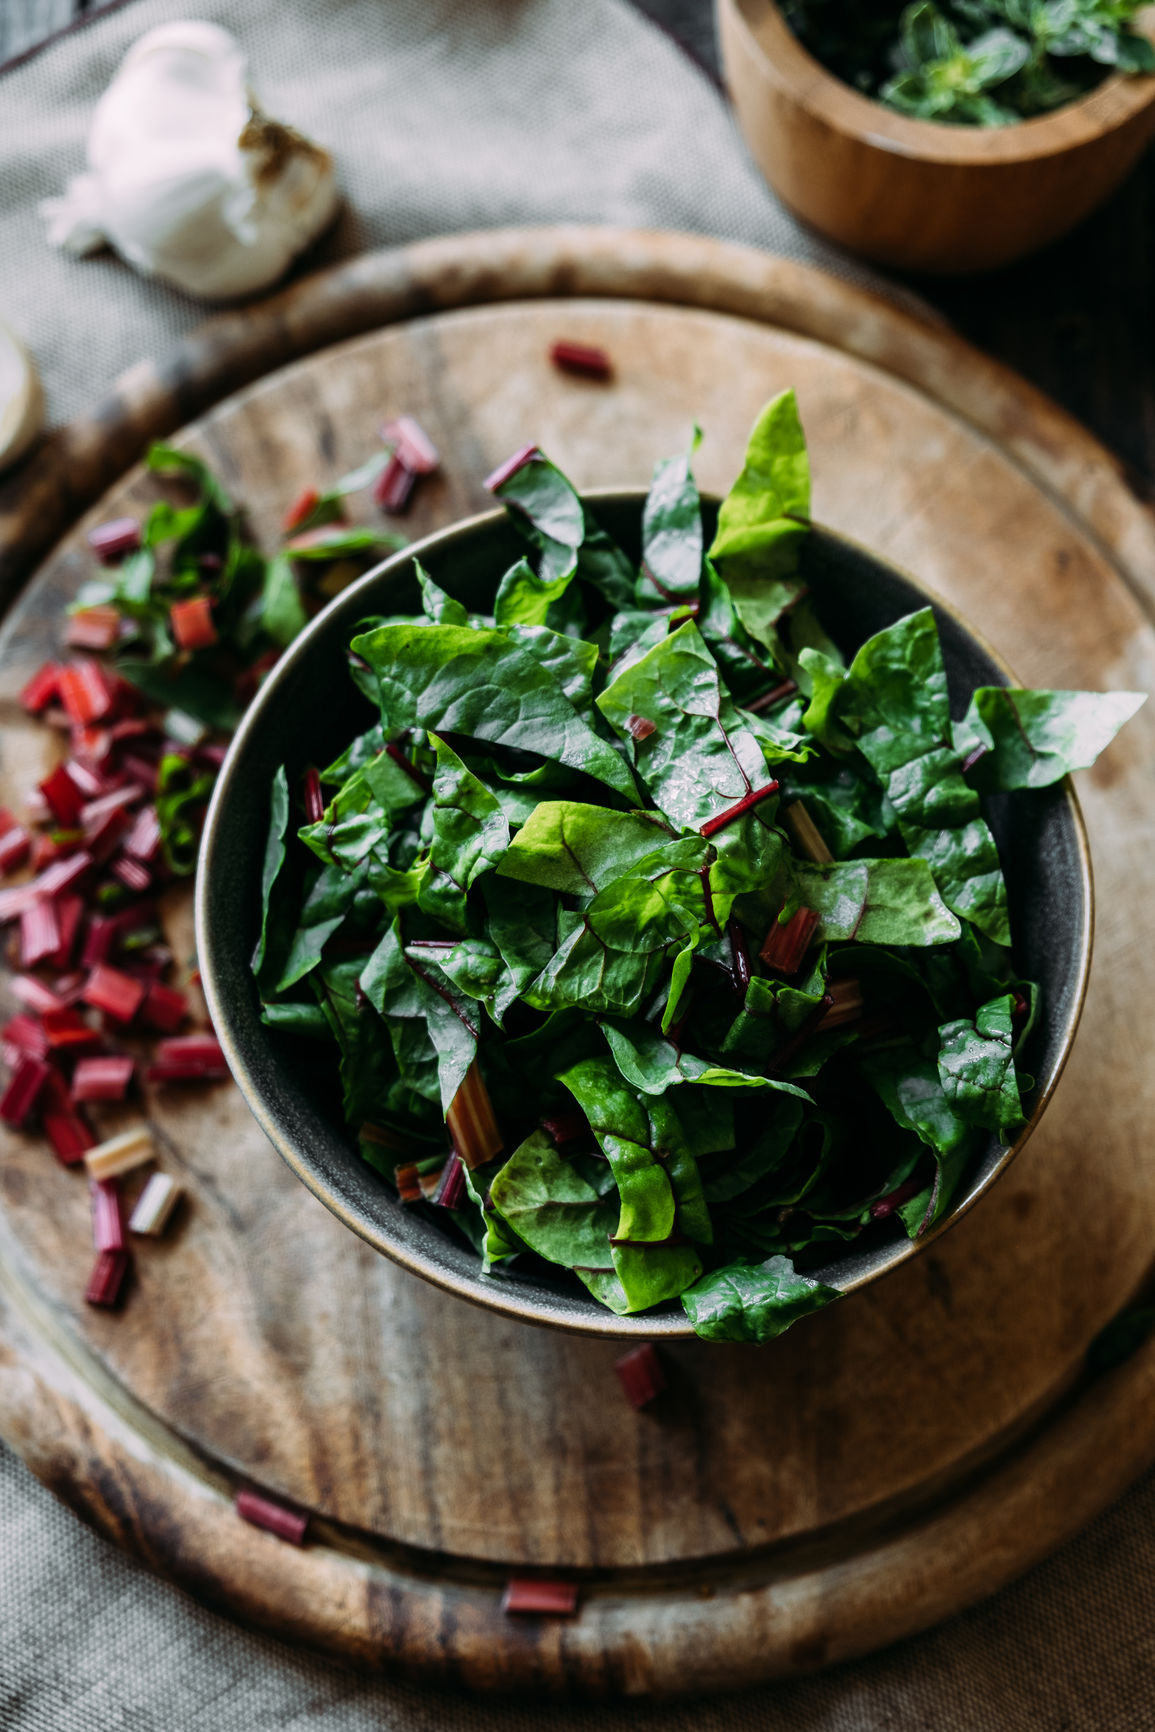 Swiss chard and fresh herbs